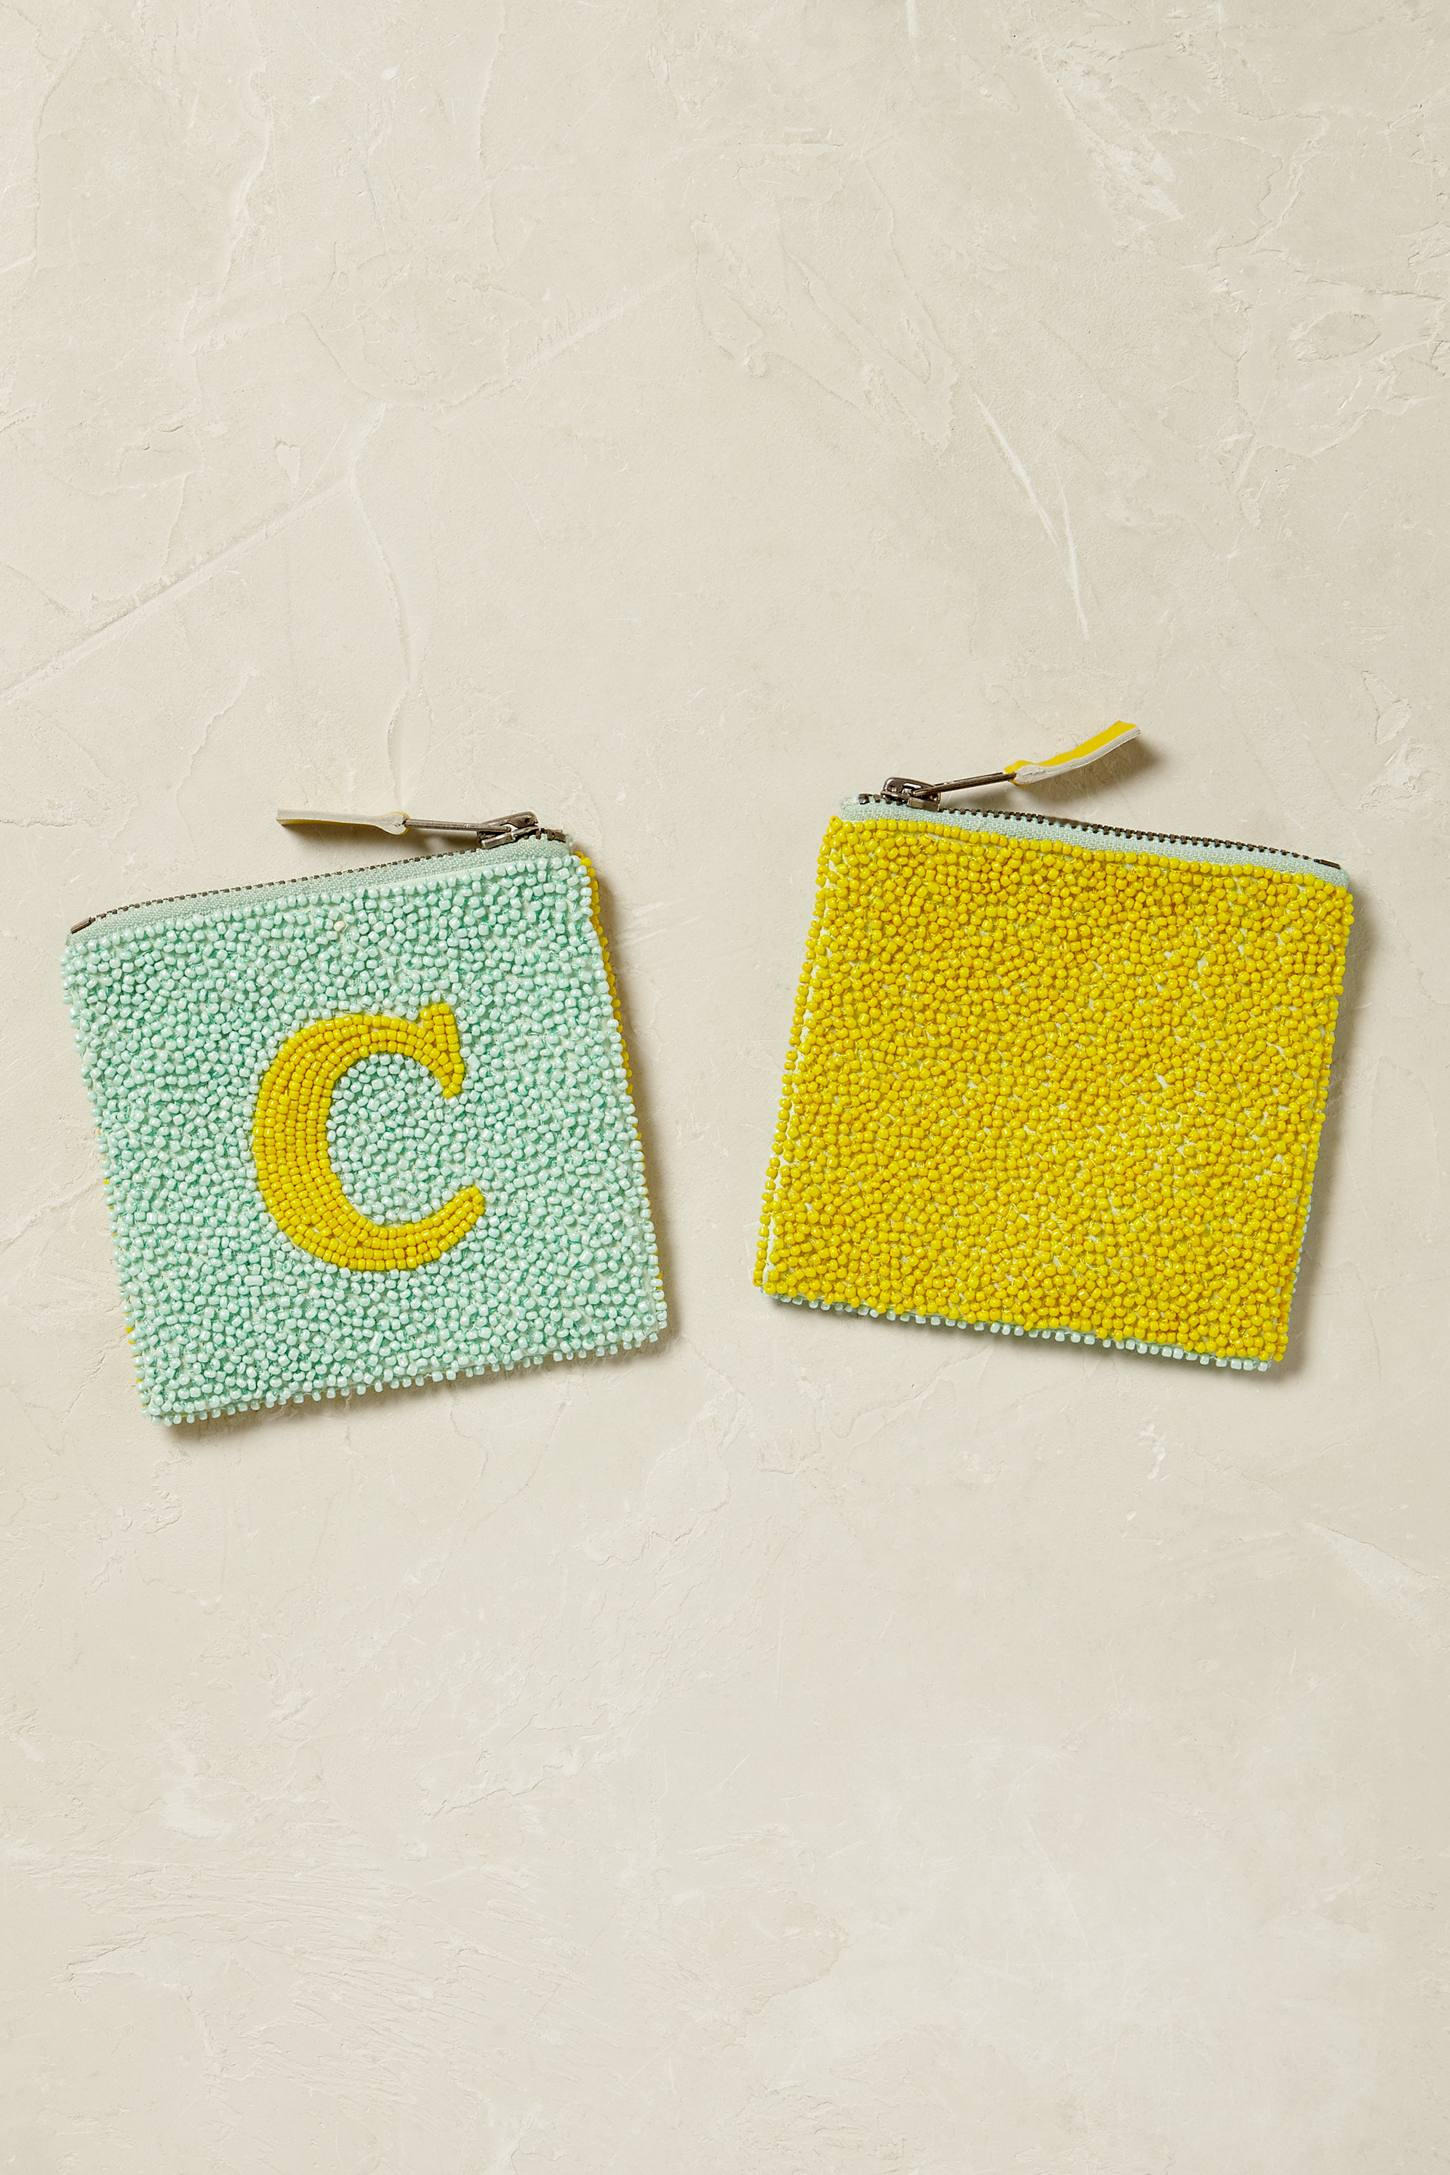 Slide View: 4: Monogram Beaded Coin Purse